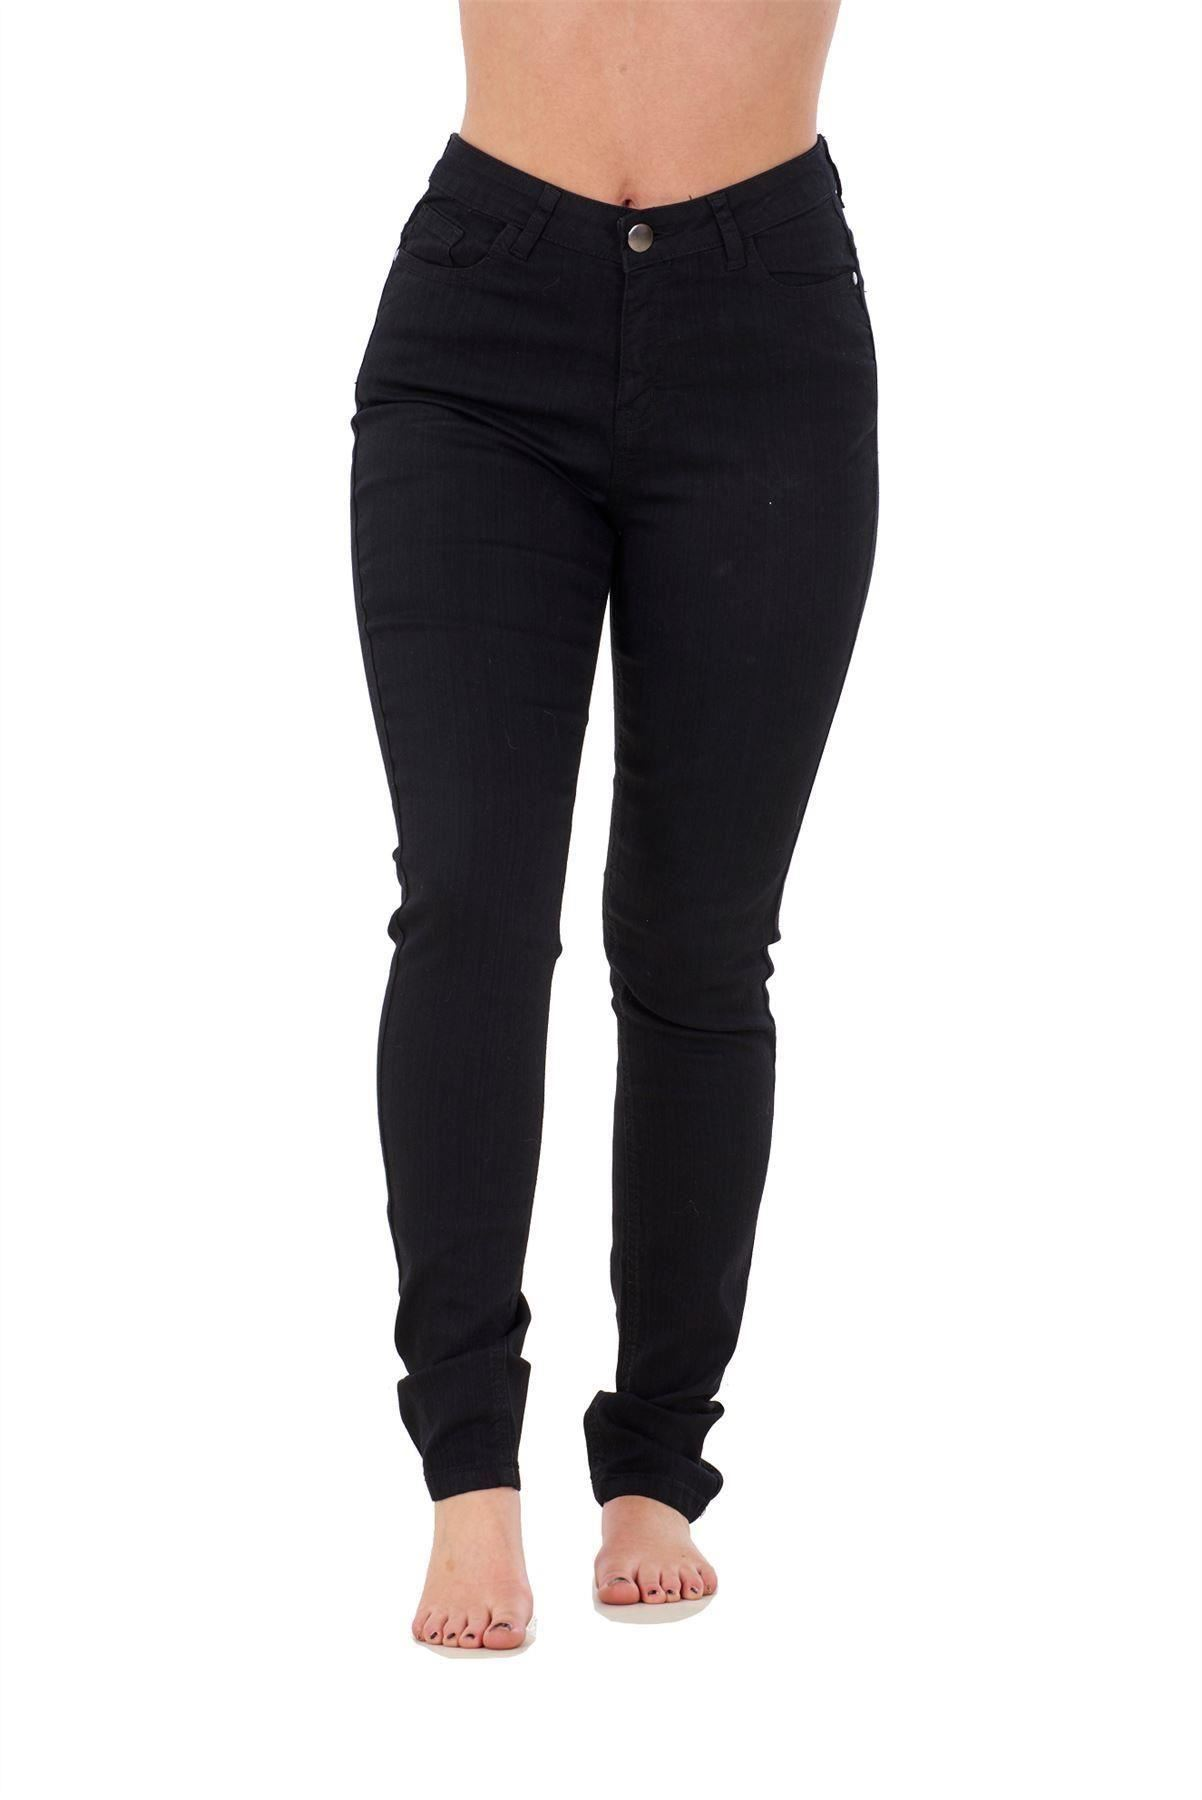 Ladies-Stretch-Jeans-Denim-cotton-Zip-fly-High-Waisted-Slim-Fit-Trousers-Pants thumbnail 5